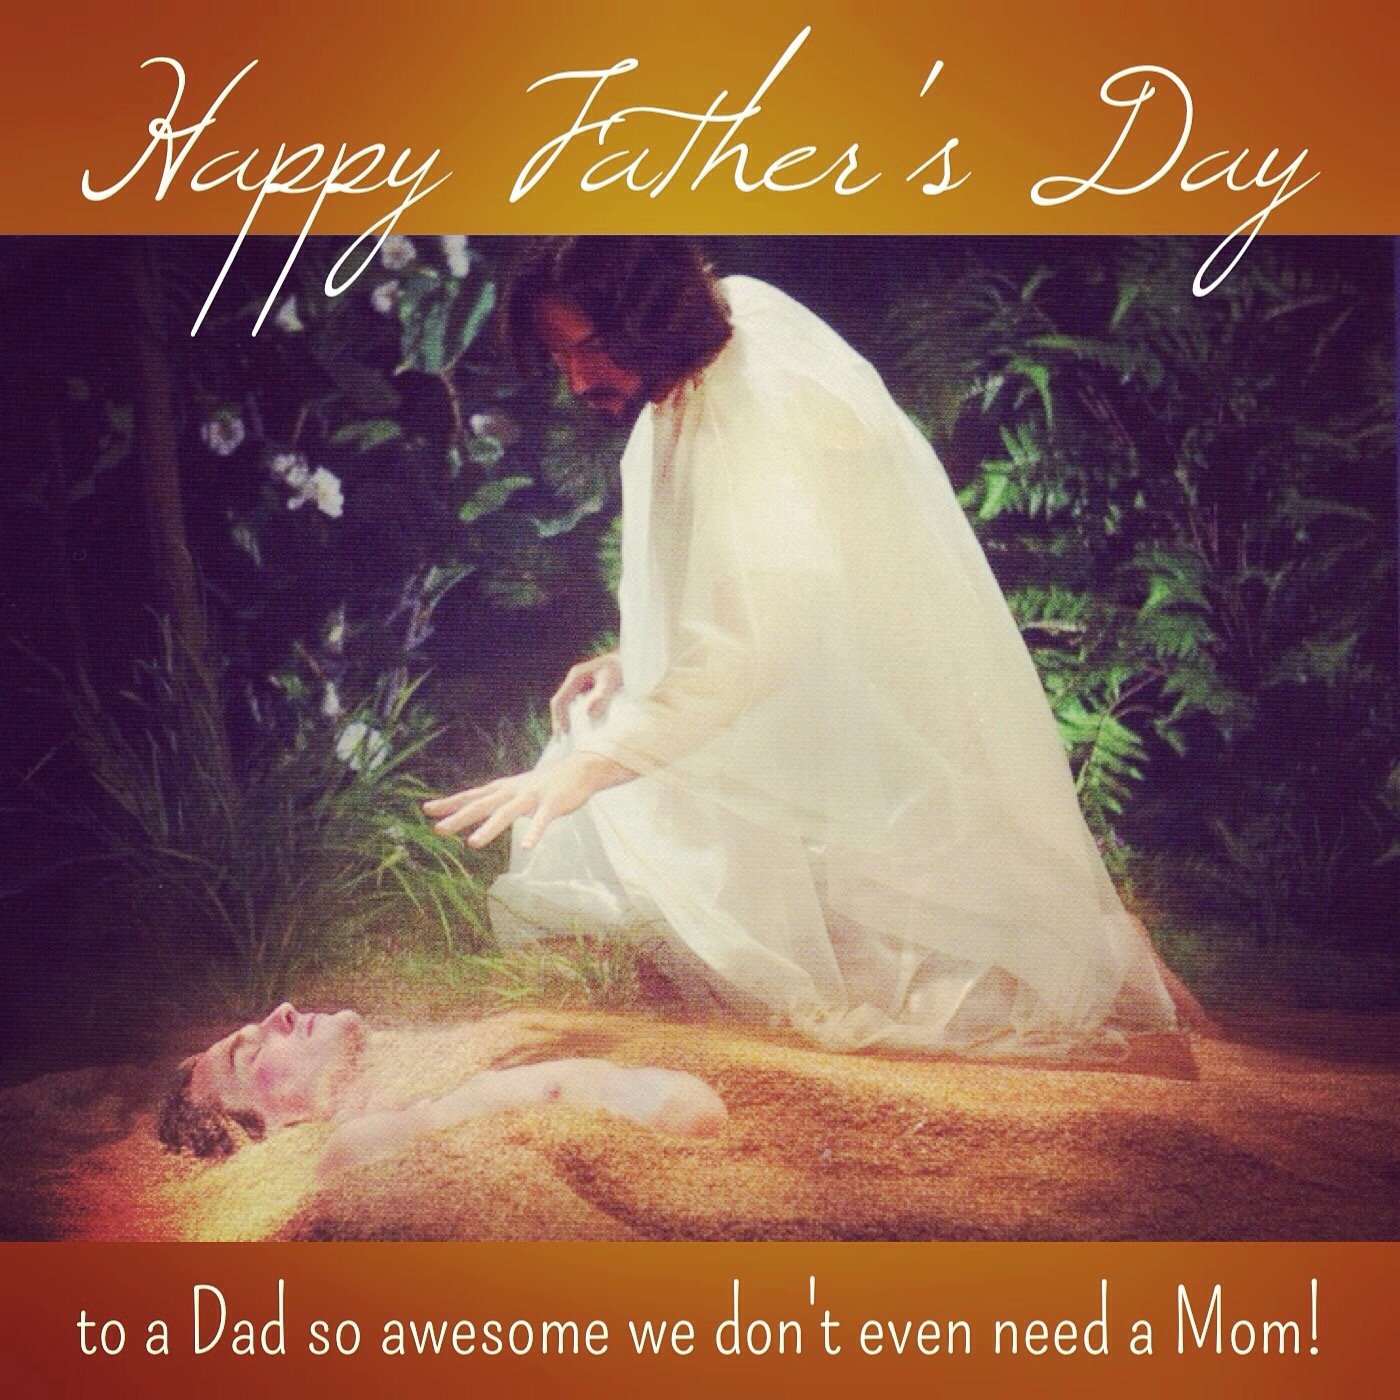 Happy Heavenly Father's Day